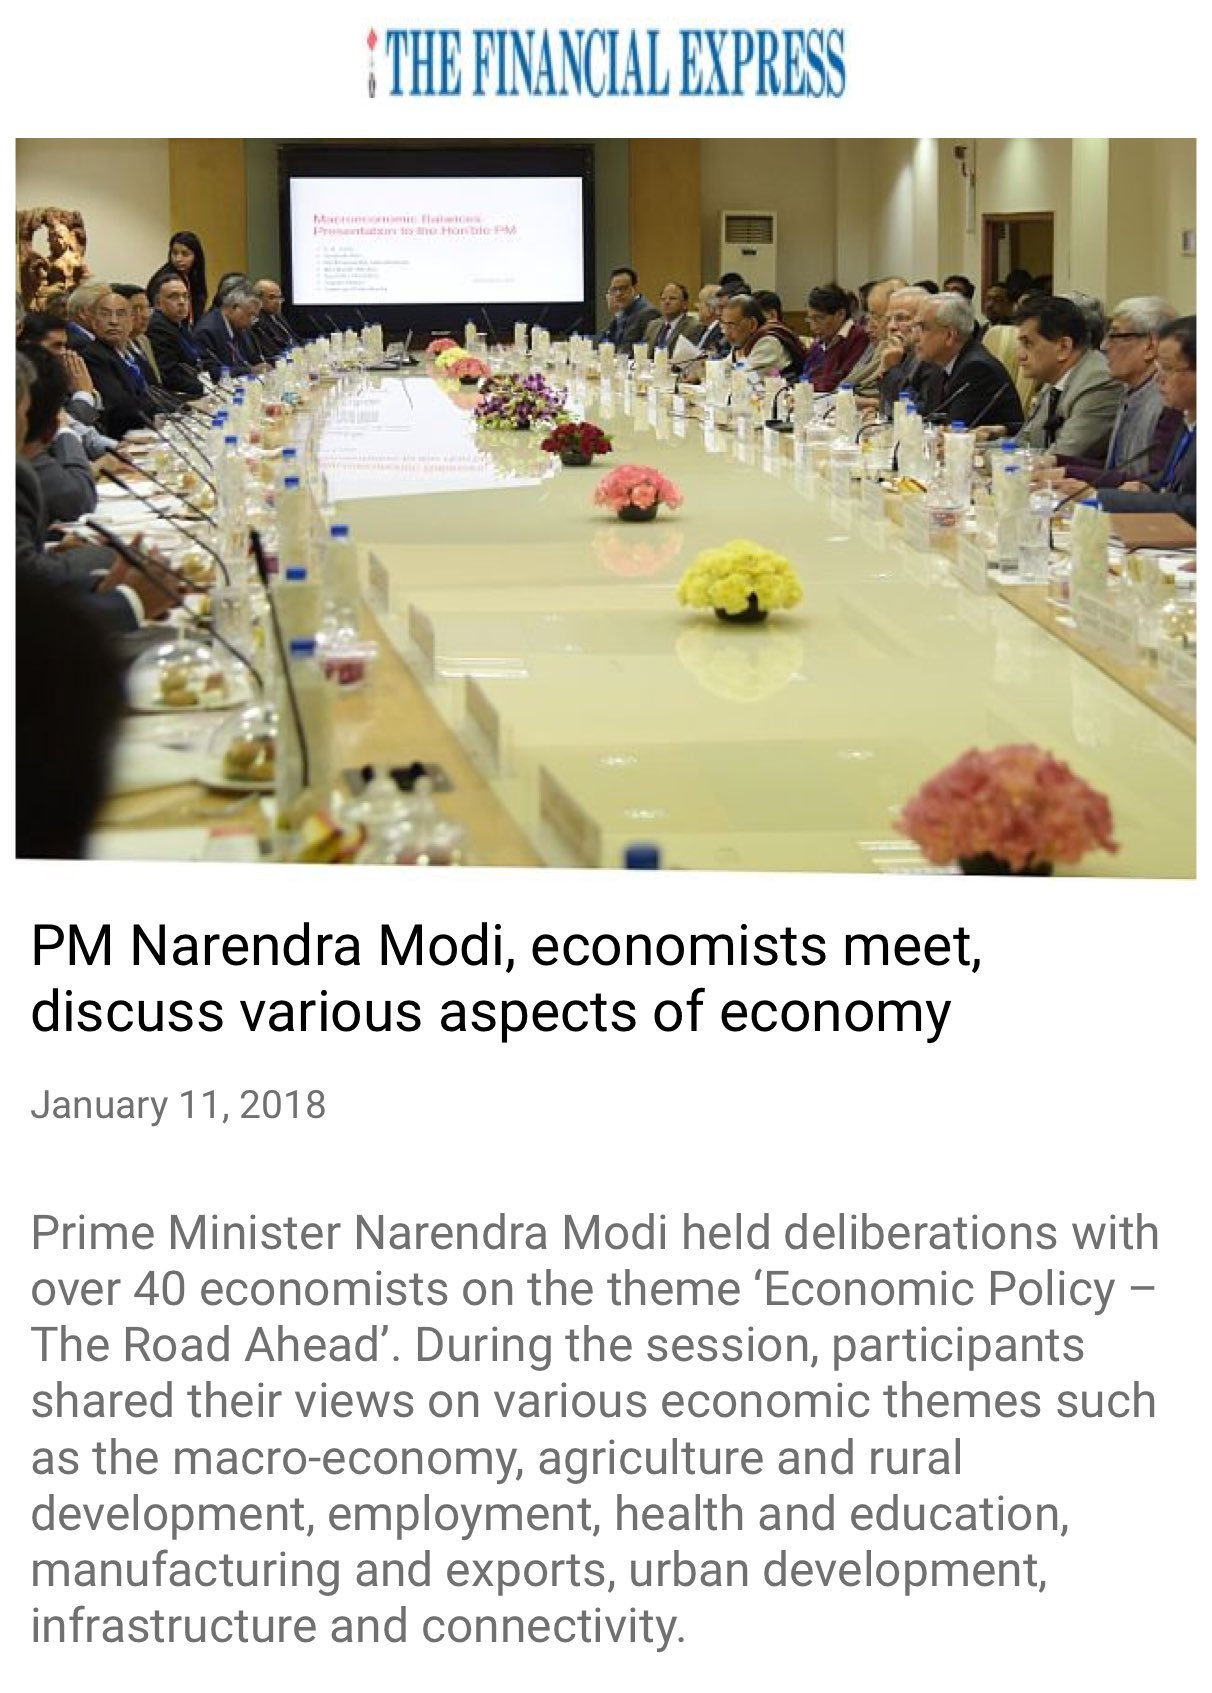 PM @narendramodi, economists meet, discuss various aspects of economy https://t.co/hQBnoZXodb  via NMApp https://t.co/xzMoTik7sj